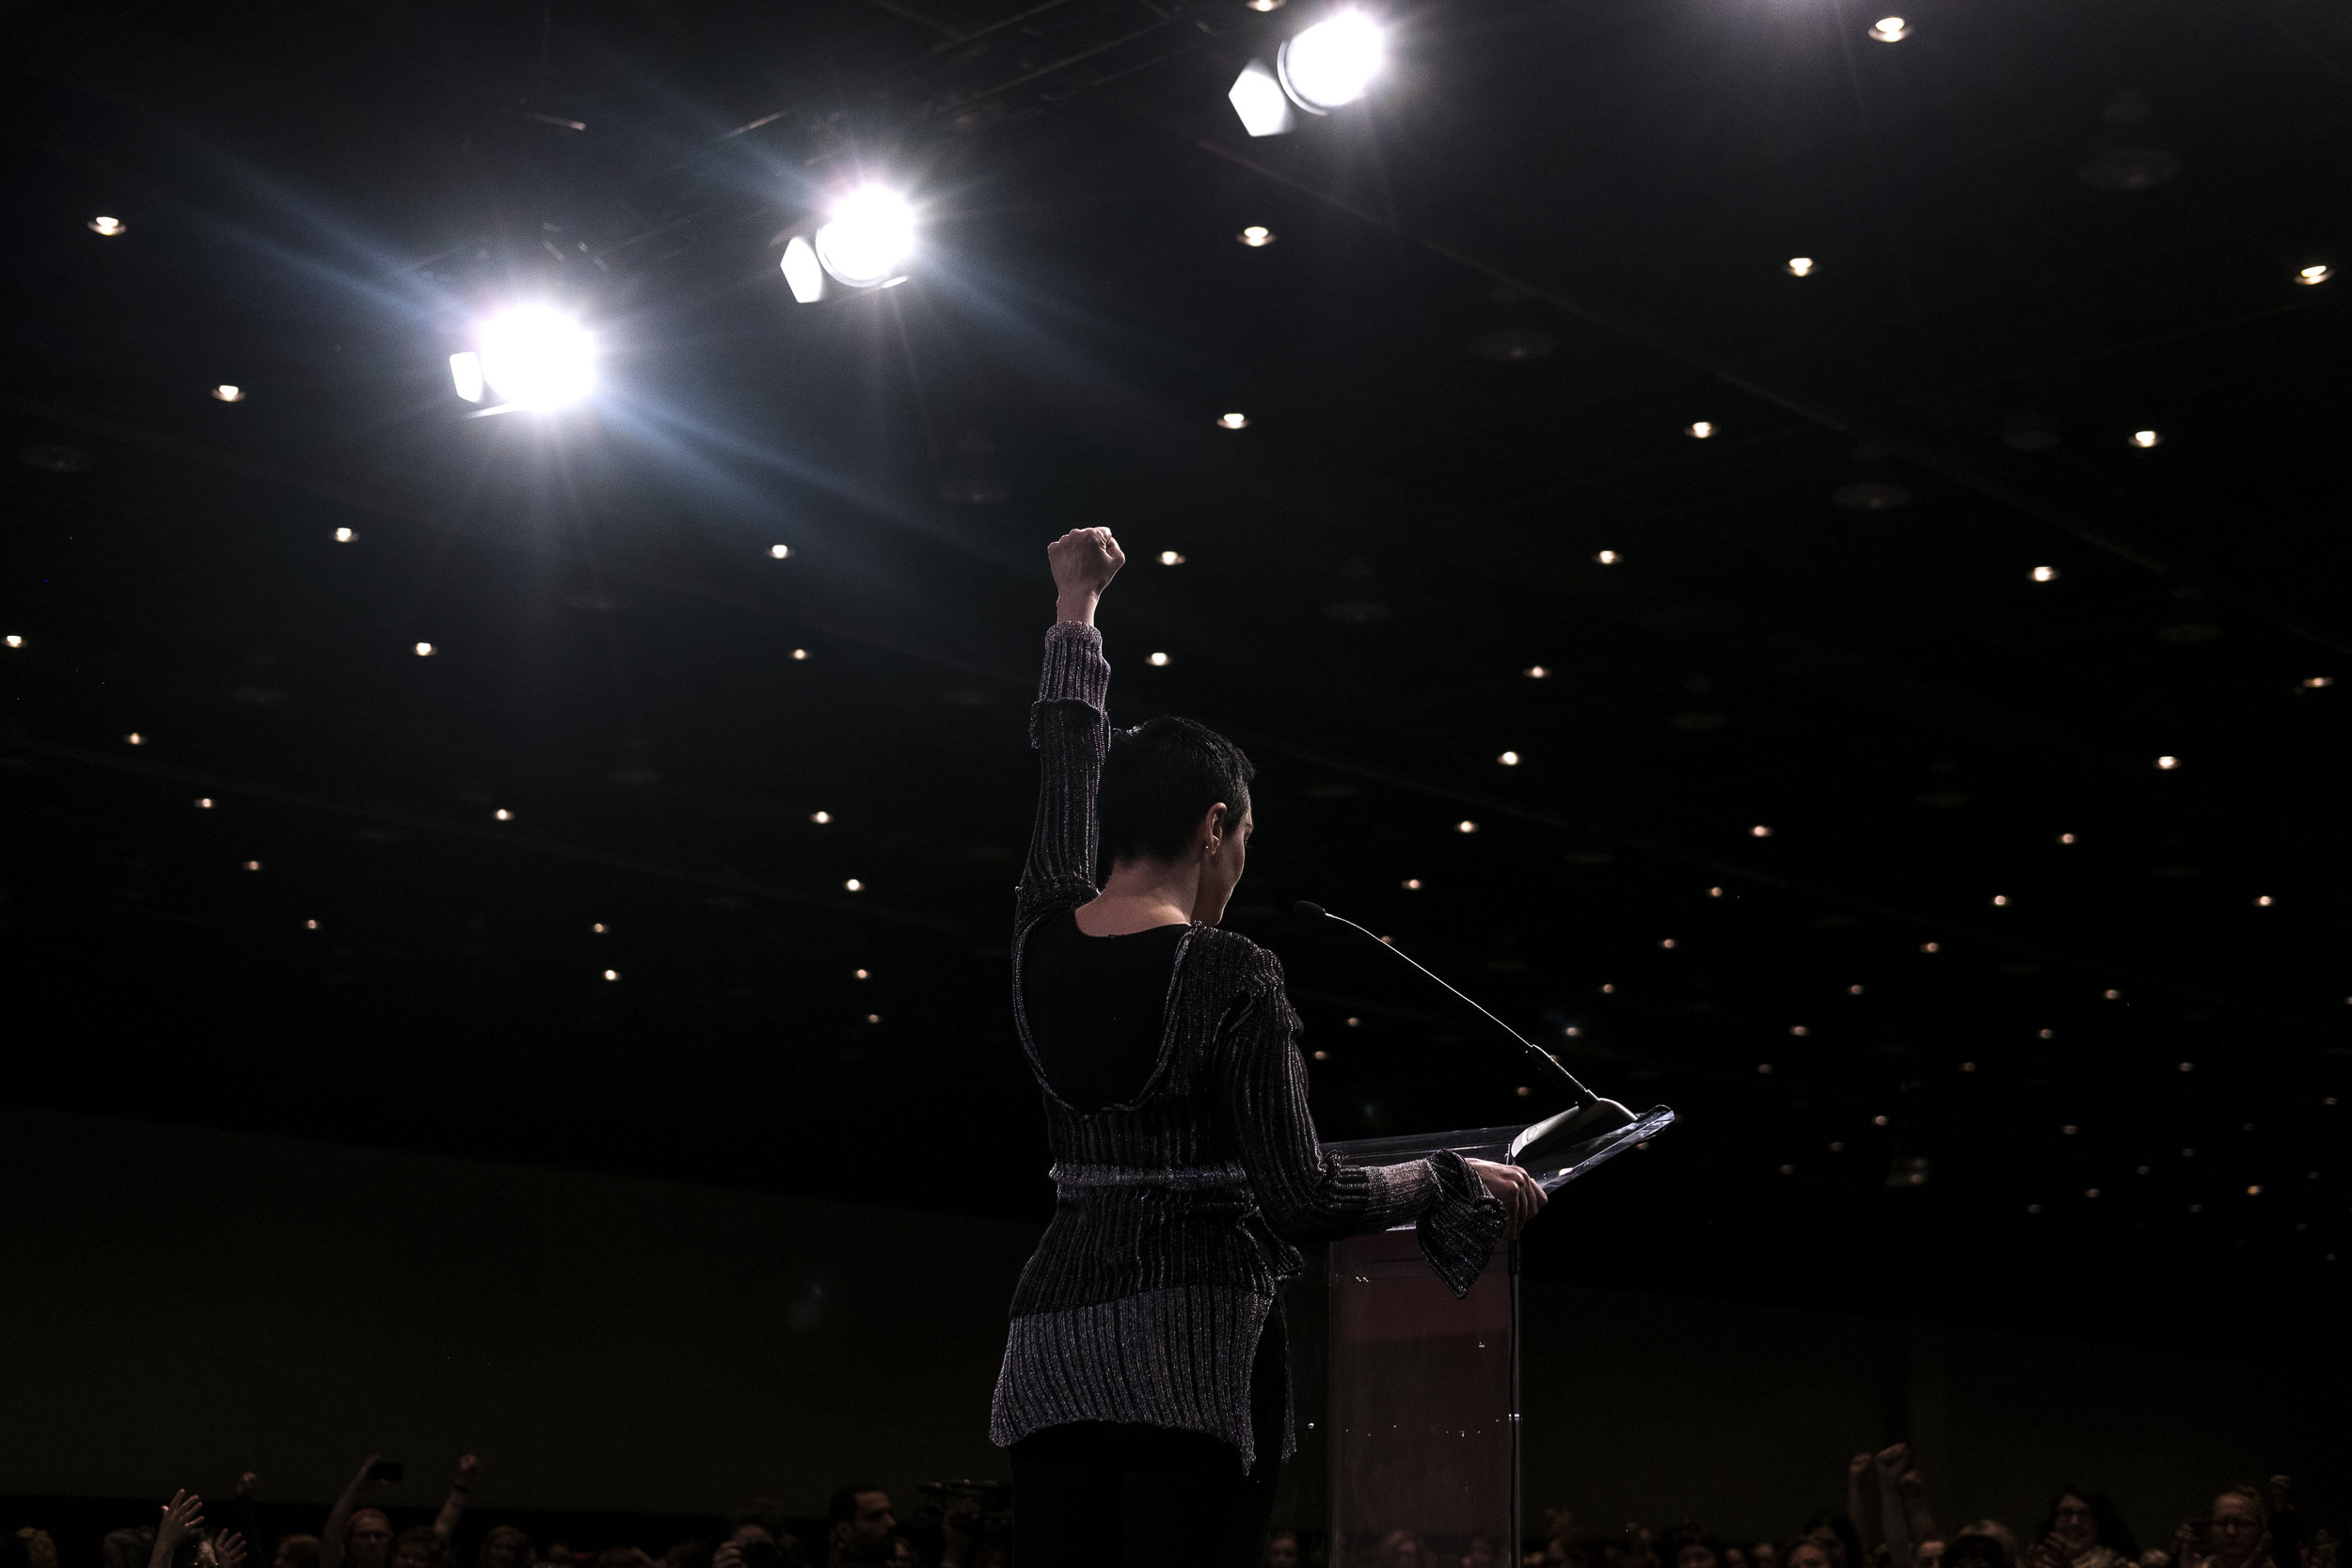 ERIN KIRKLAND |  www.erinkirklandphotography.com  |  @http://instagram.com/eakirklandphoto   Actress Rose McGowan raises her fist while delivering the opening address at the Women's Convention on October 27 in Detroit, Mich. This was the first time McGowan had spoken in public since accusing film producer Harvey Weinstein of rape.   [ The New York Times ]